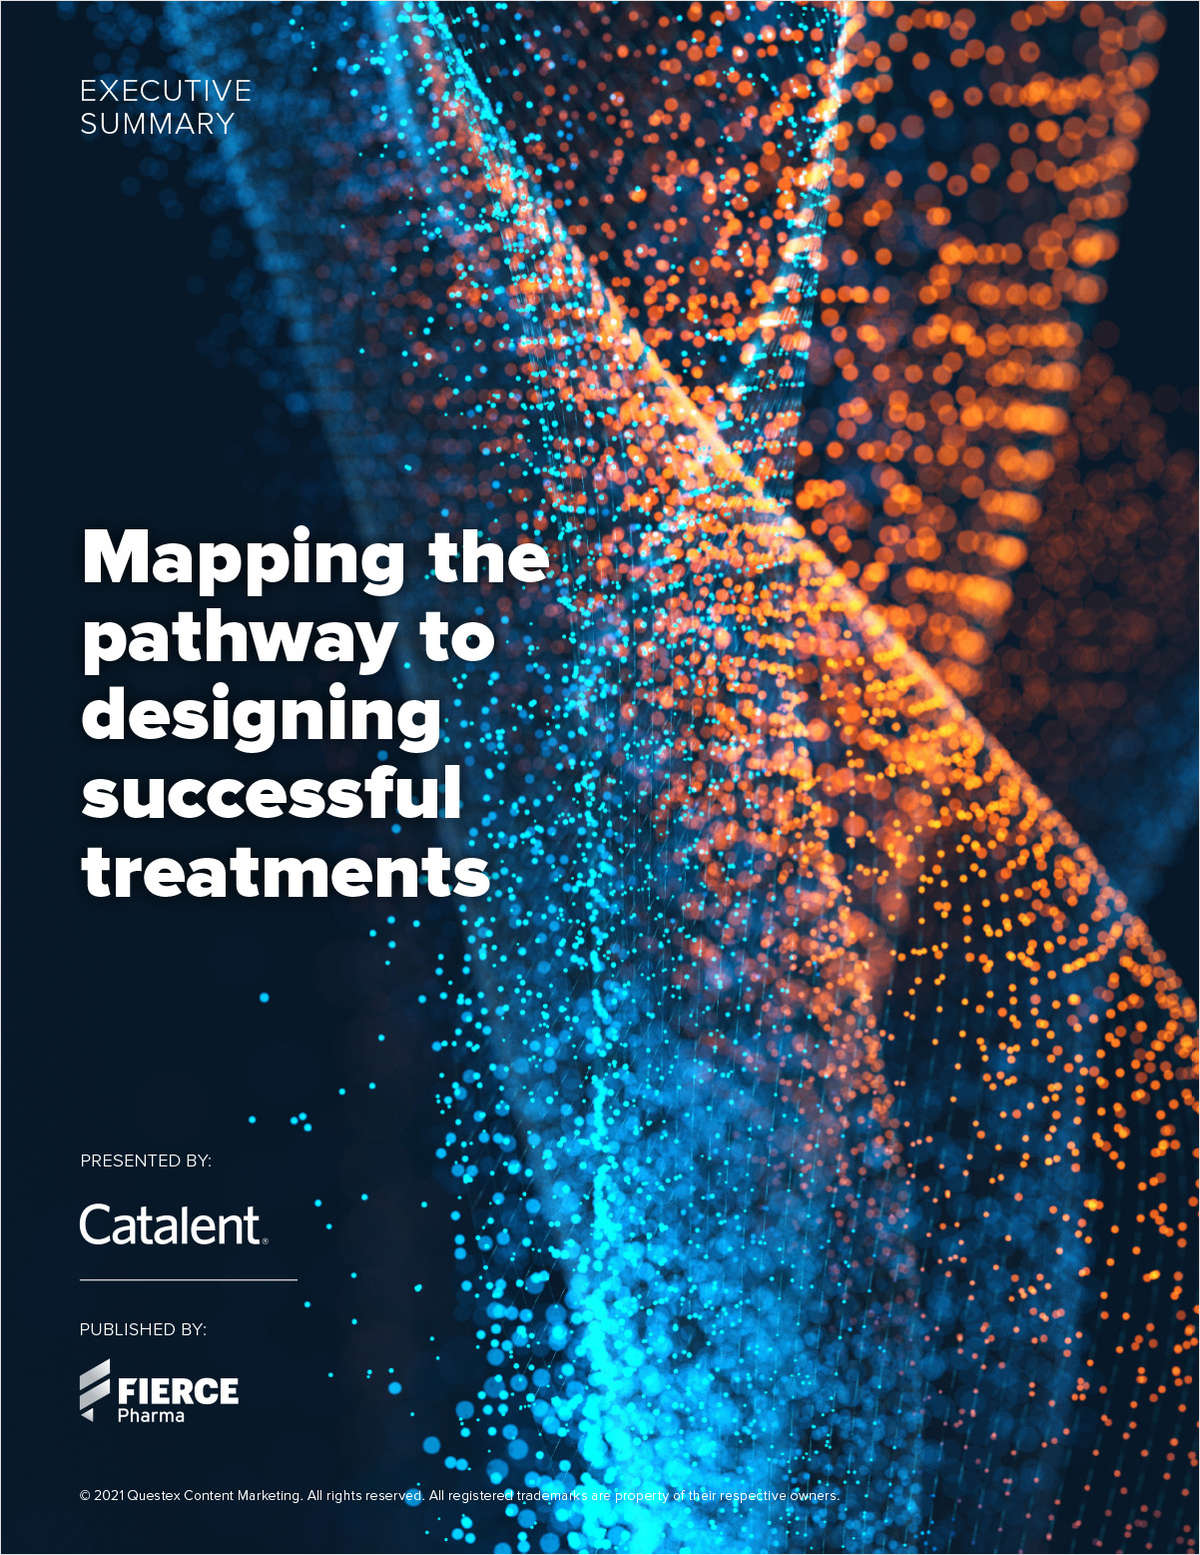 Mapping the Pathway to Designing Successful Treatments